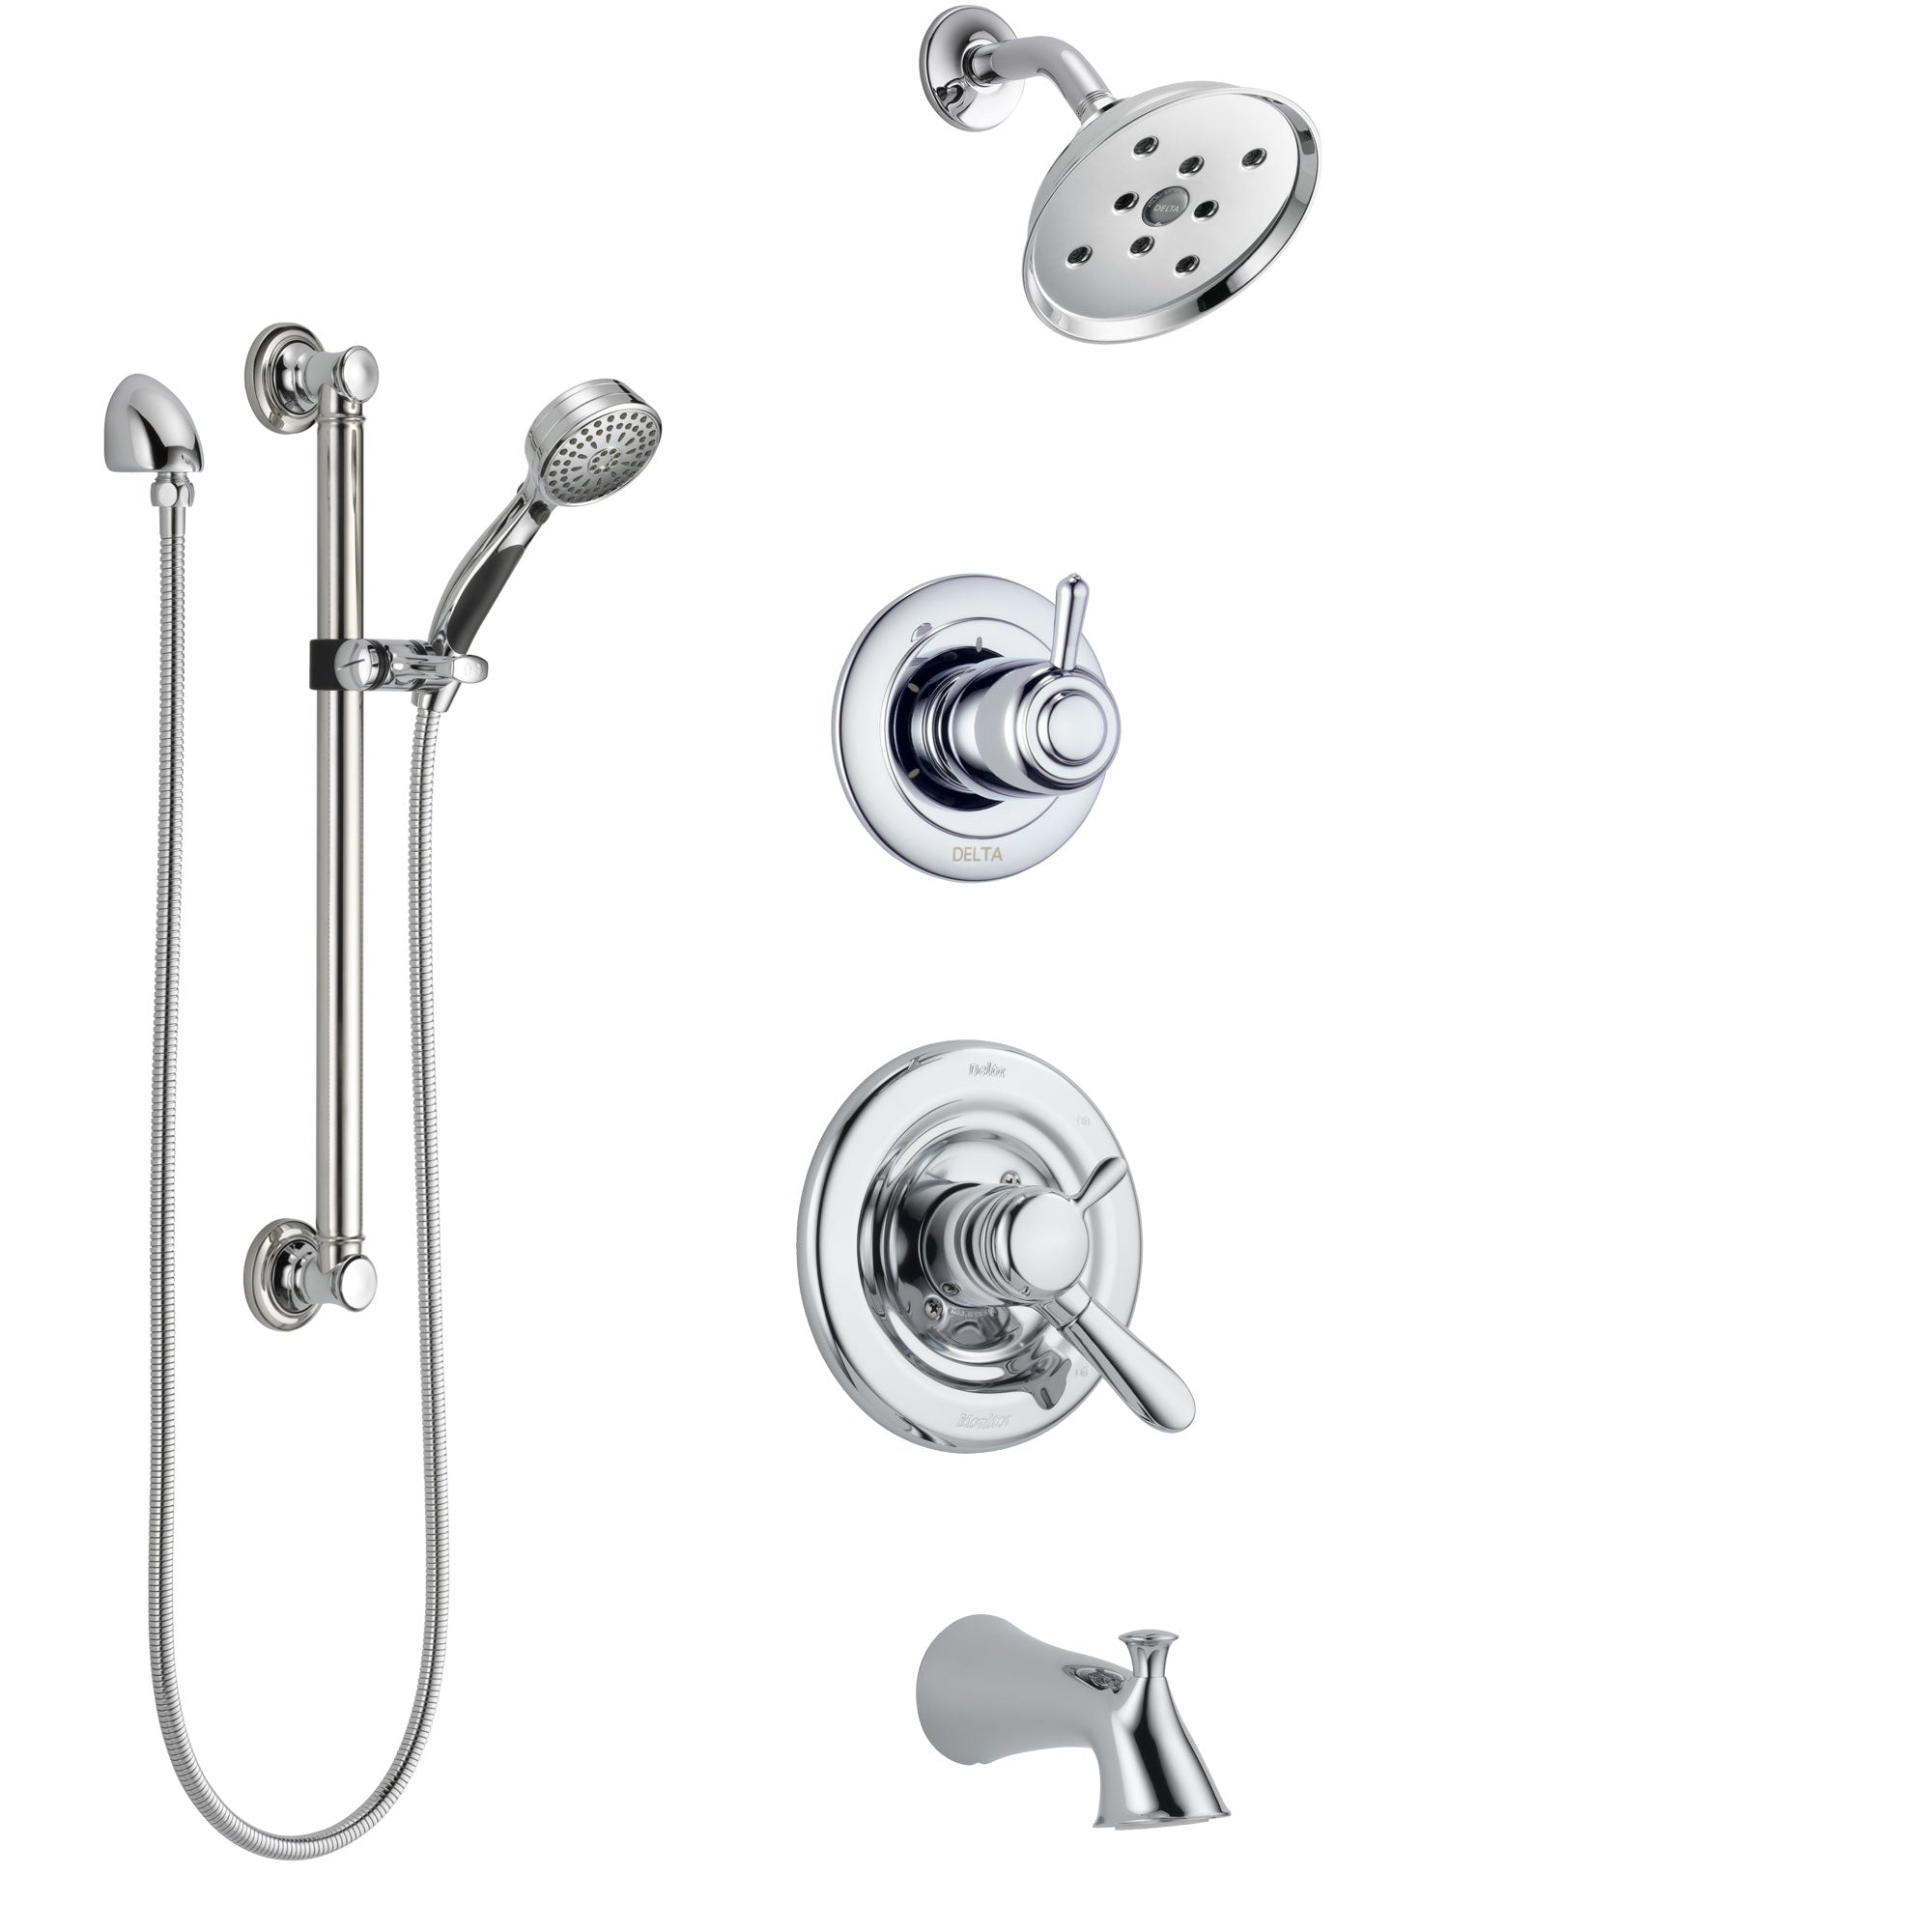 Delta Lahara Chrome Finish Tub and Shower System with Dual Control Handle, 3-Setting Diverter, Showerhead, and Hand Shower with Grab Bar SS174384